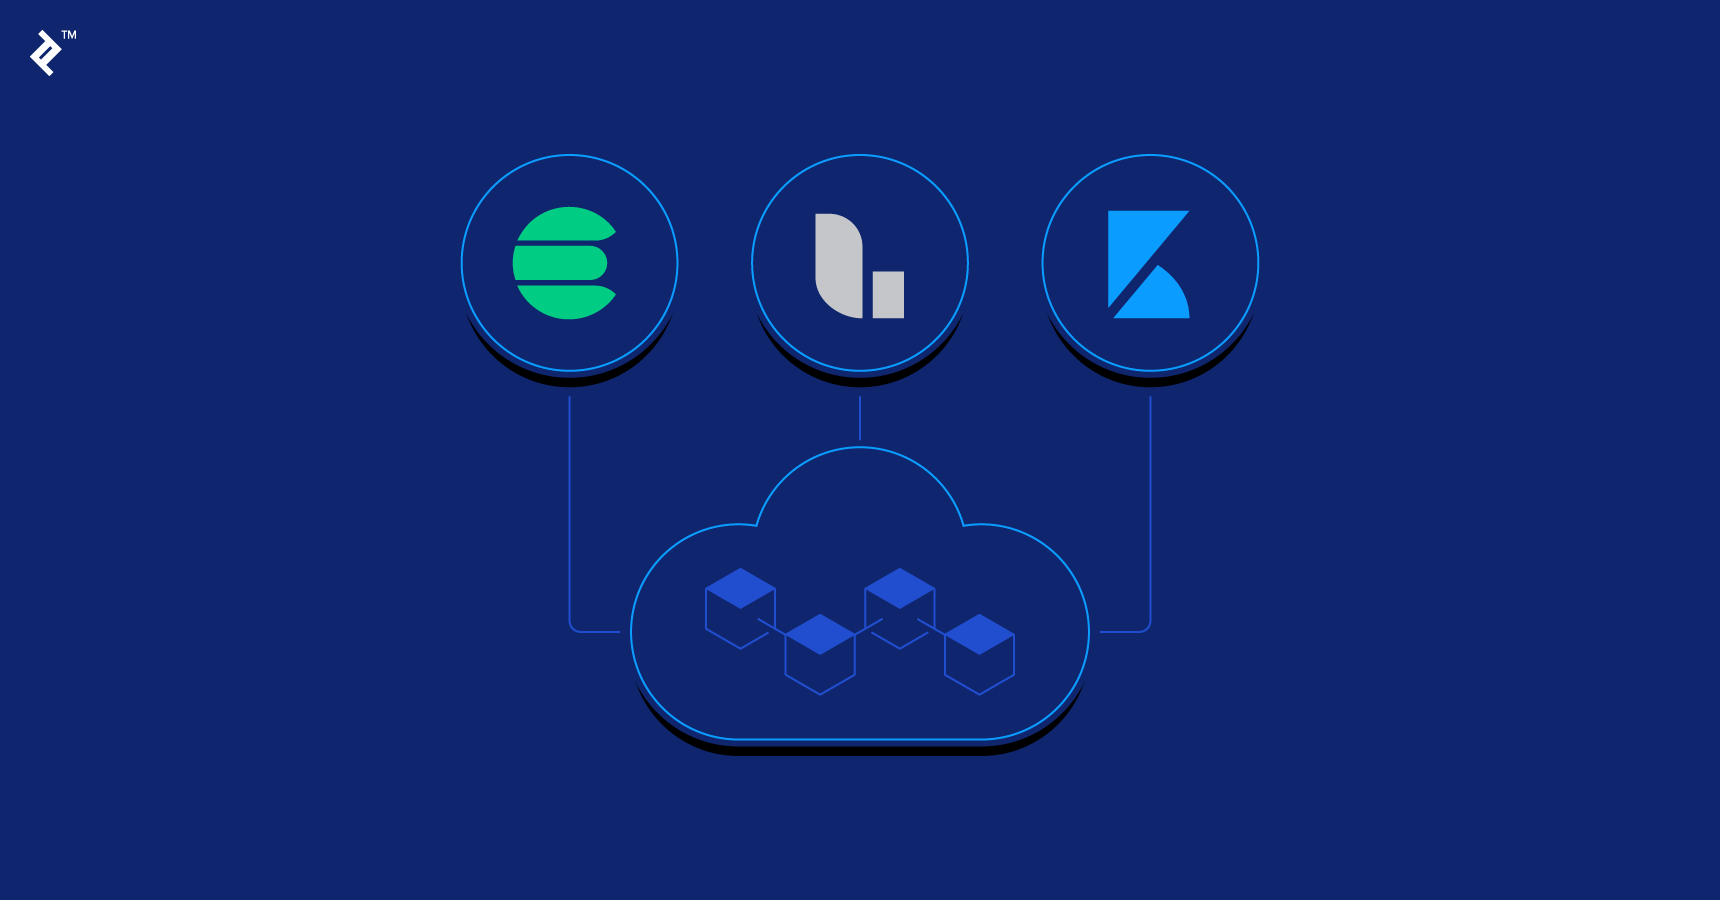 ELK to AWS: Why and How to Migrate | Toptal